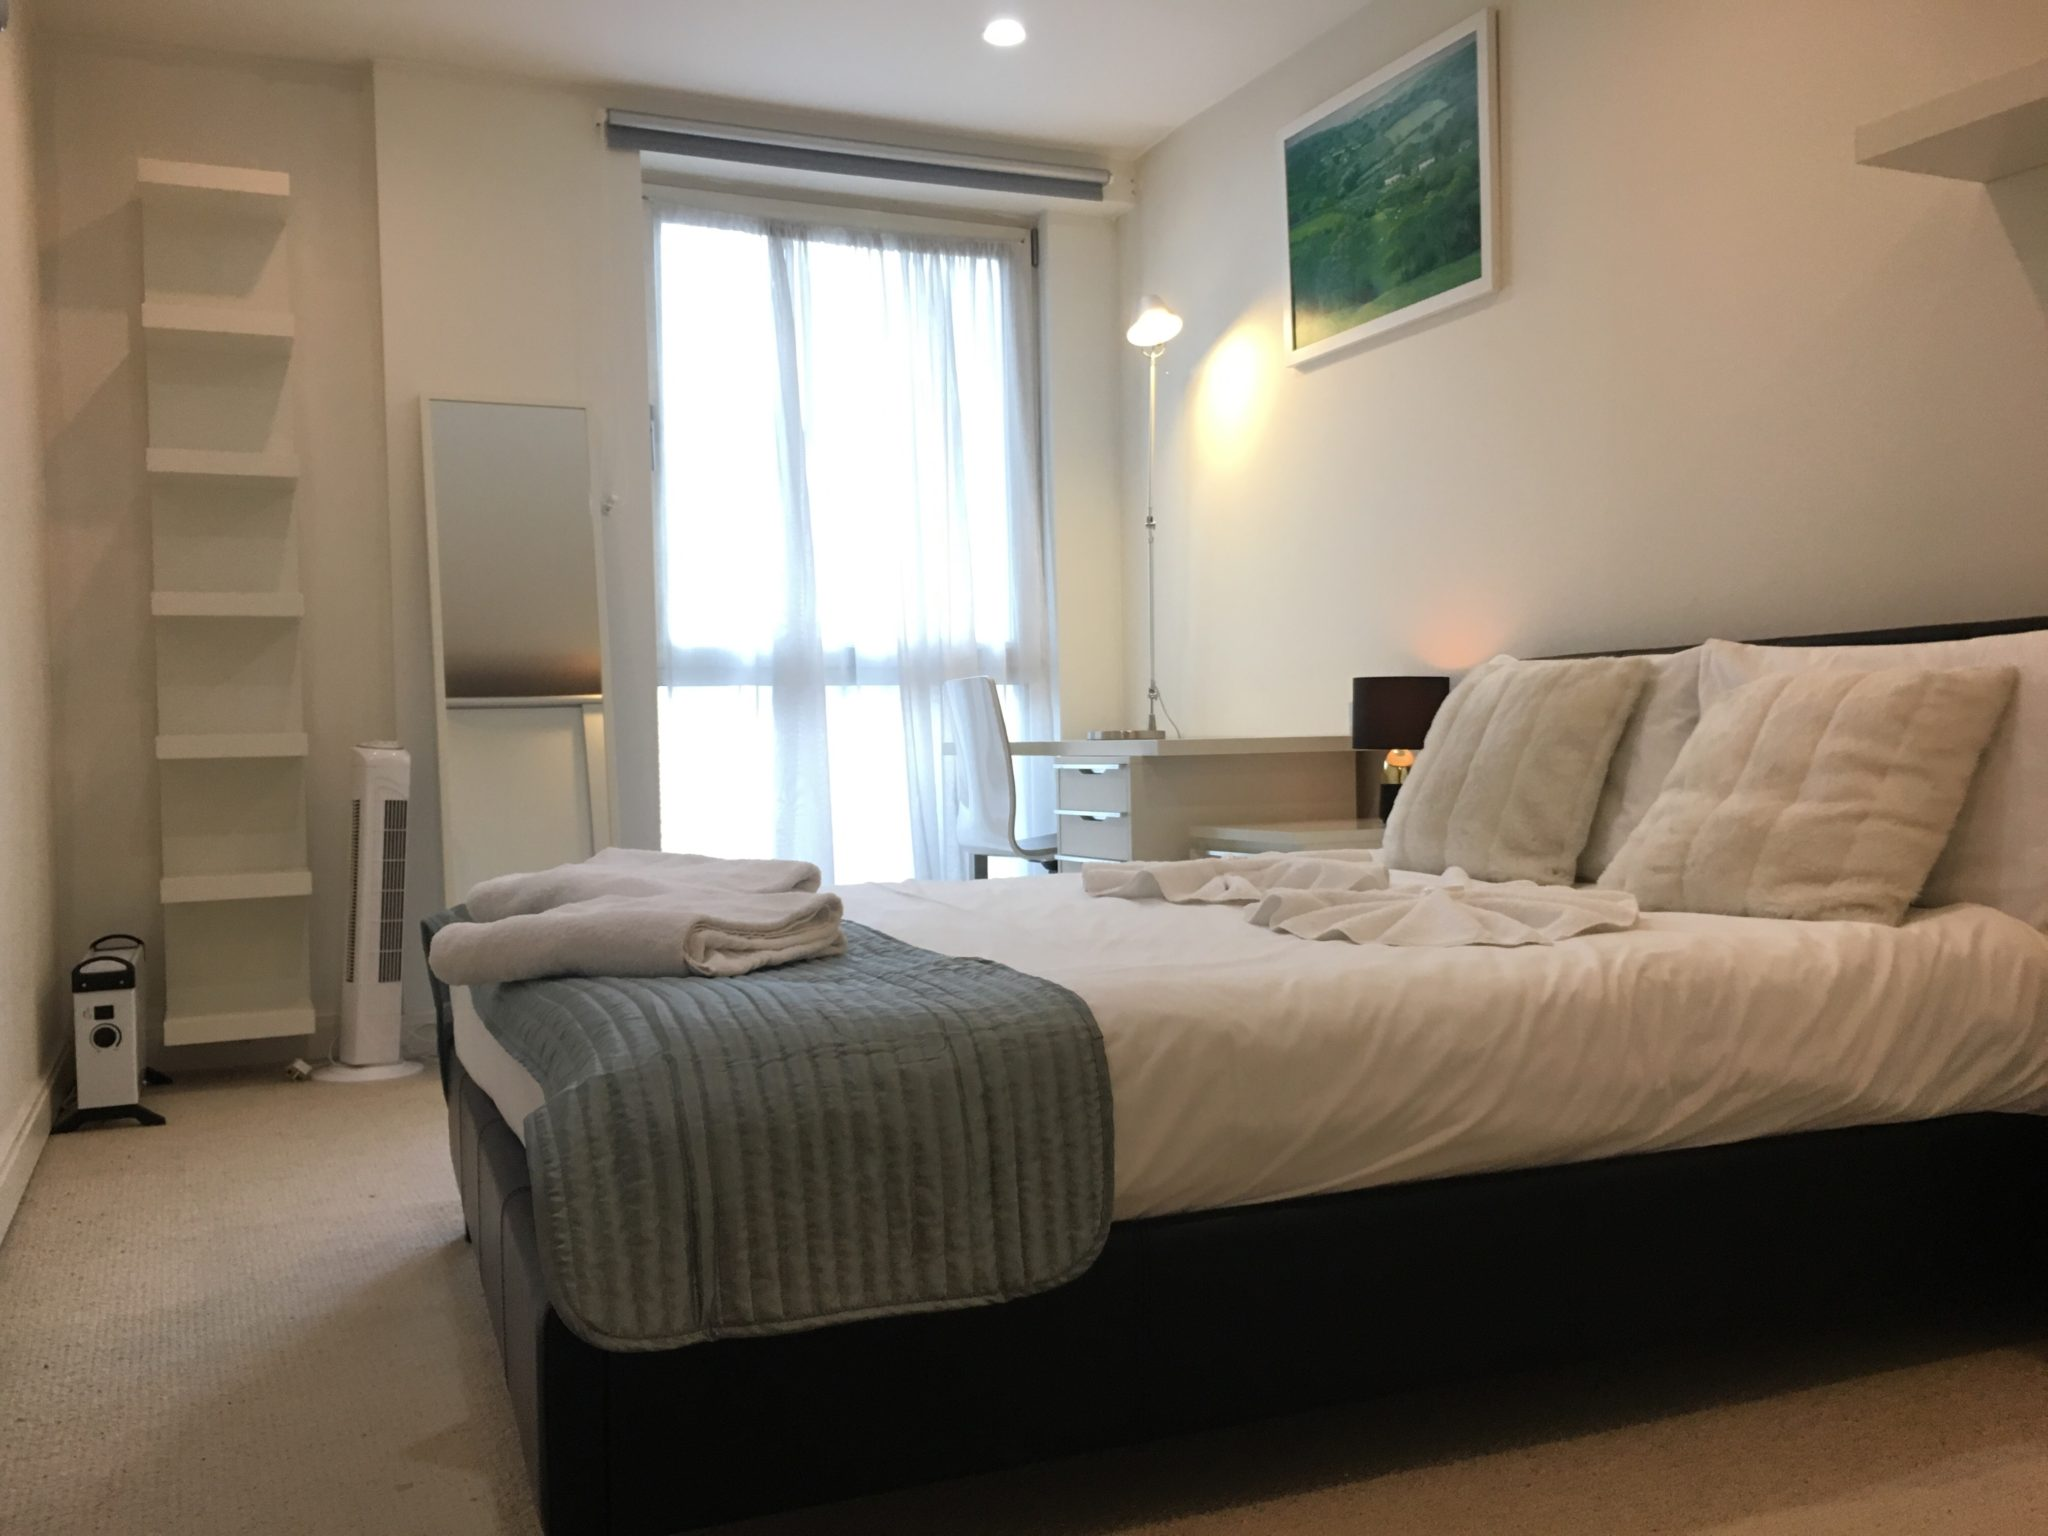 Serviced-Accommodation-Barbican-|-Serviced-Apartments-Clerkenwell-London-City-|-Corporate-Accommodation-London-City-|-BEST-RATES---NO-FEES-|-BOOK-NOW!!-Urban-Stay